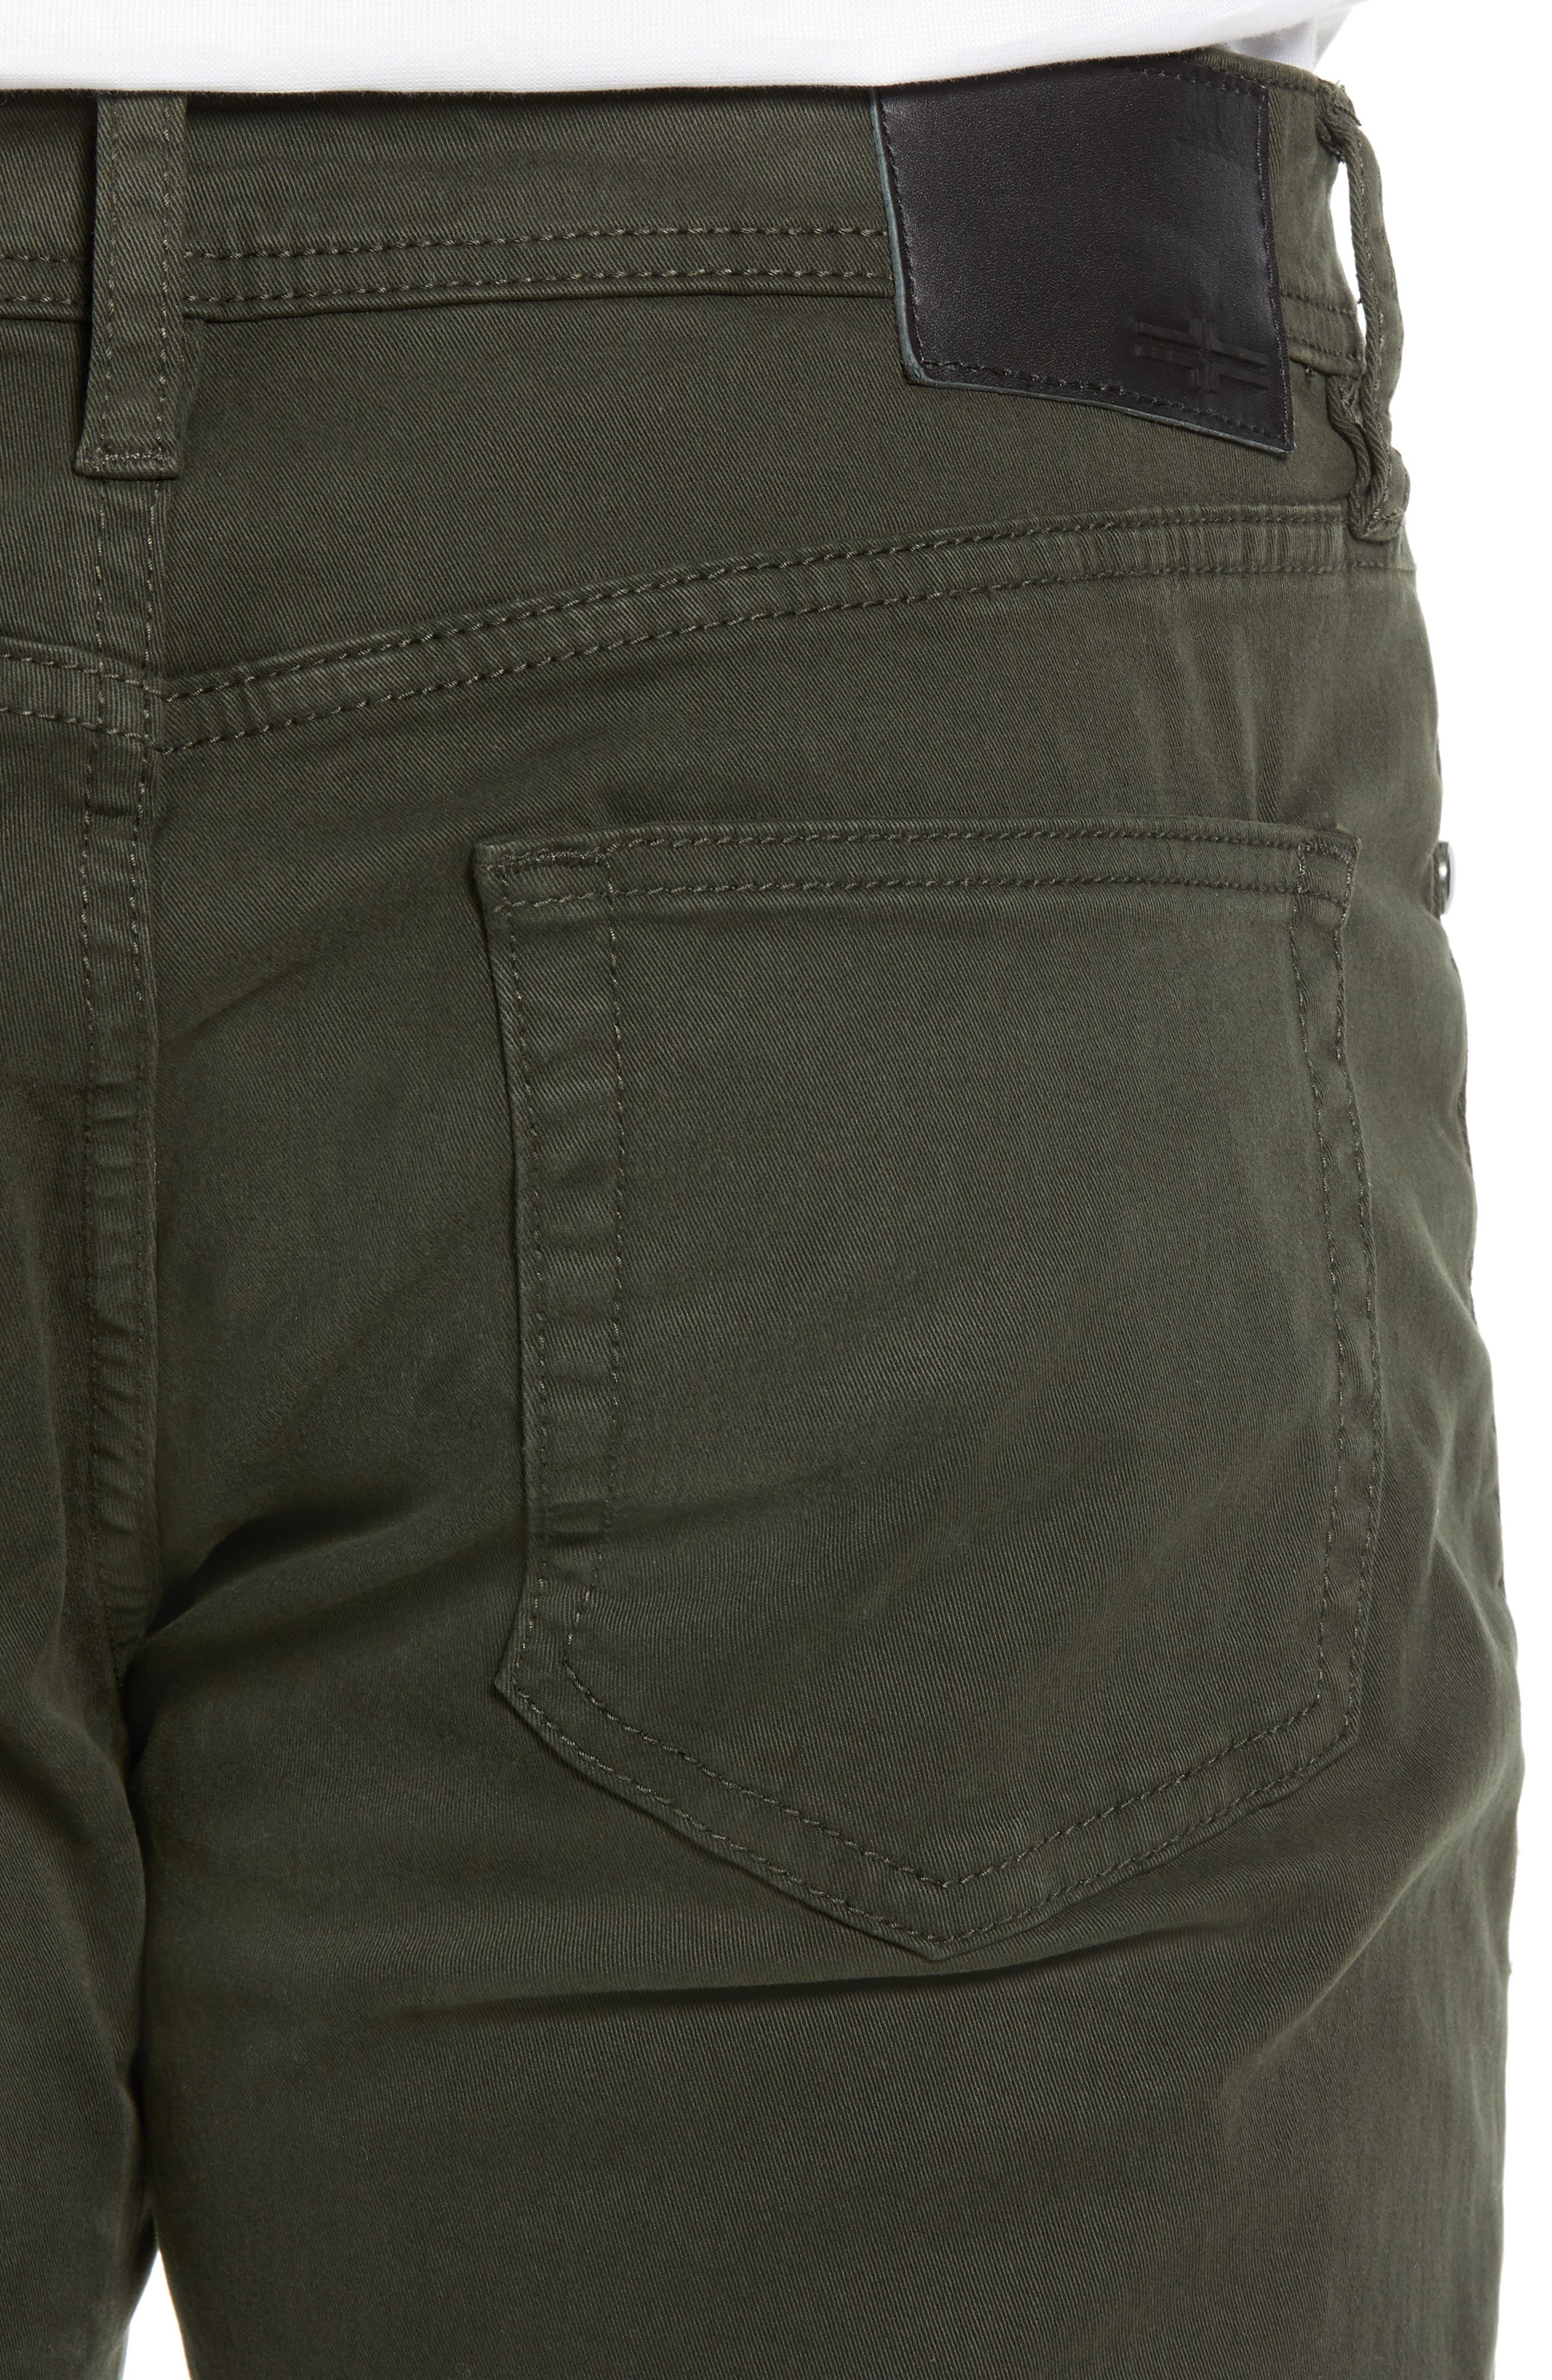 Regent Relaxed Straight Leg Twill Pants,                             Alternate thumbnail 4, color,                             OLIVE MULCH